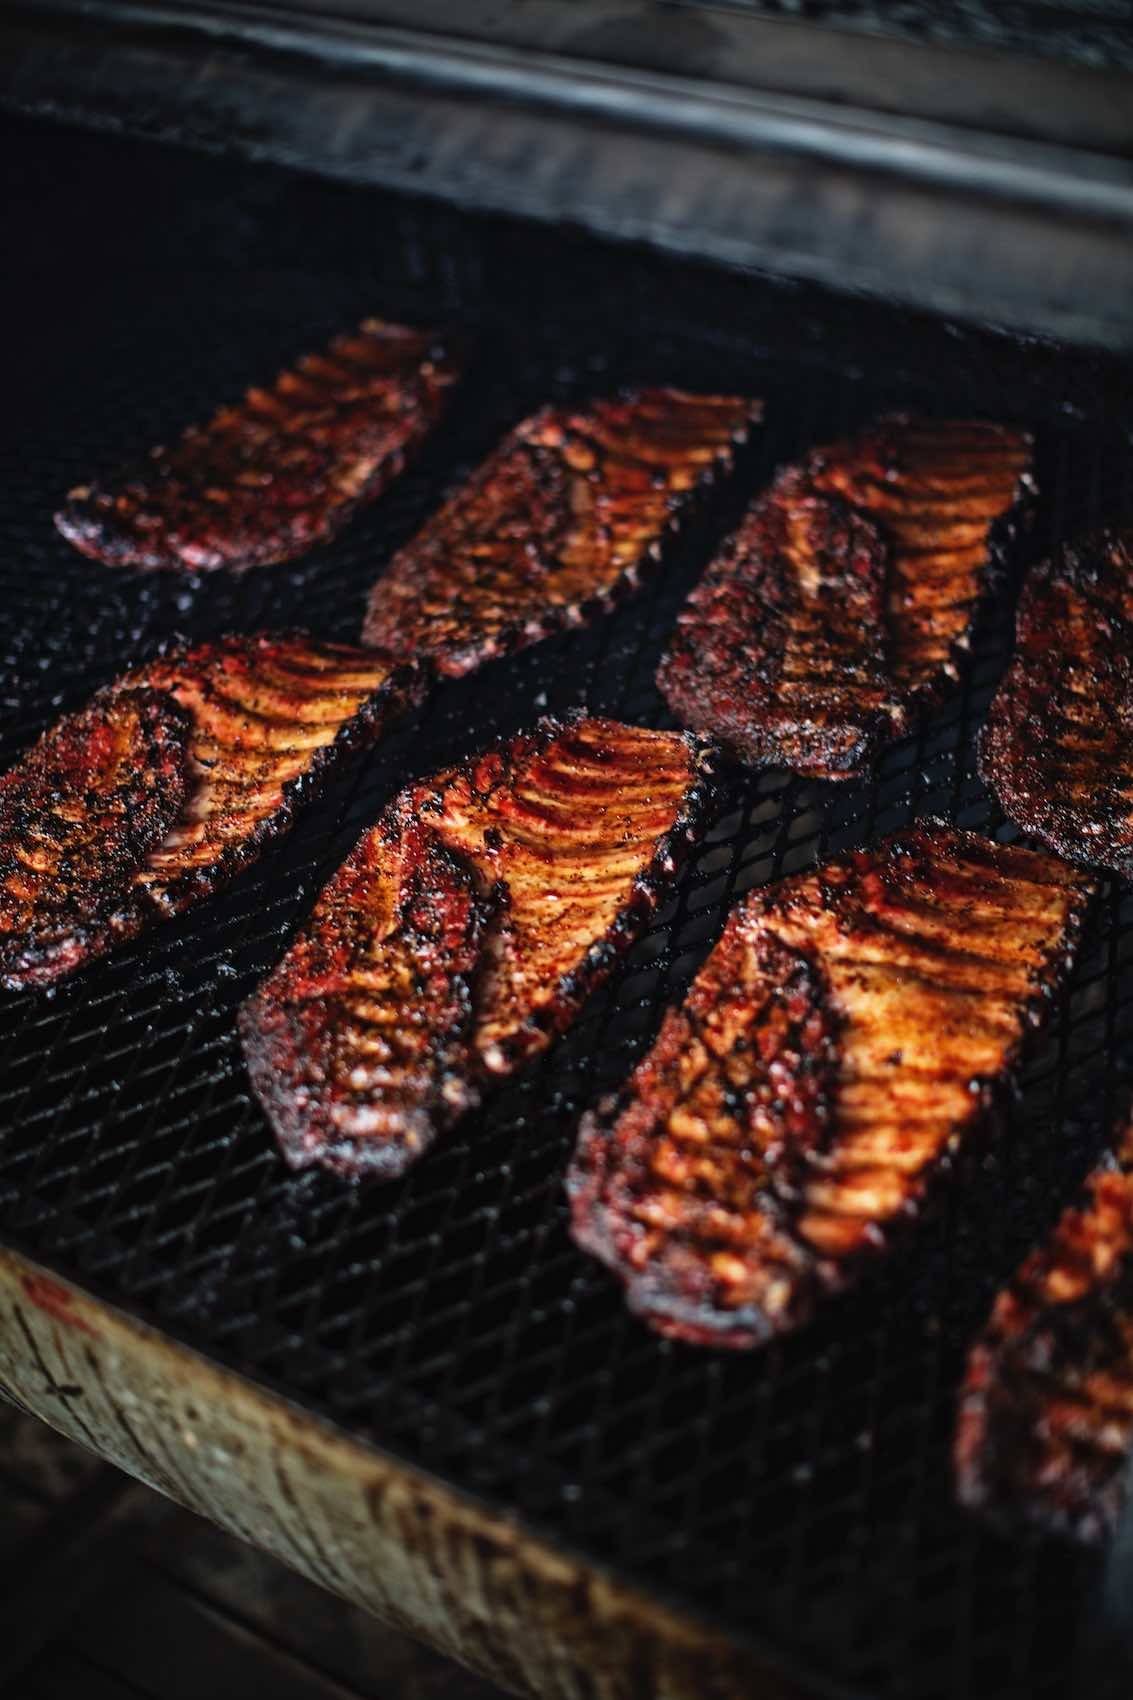 Jody Horton Photography - Barbecued ribs cooking in smoker.